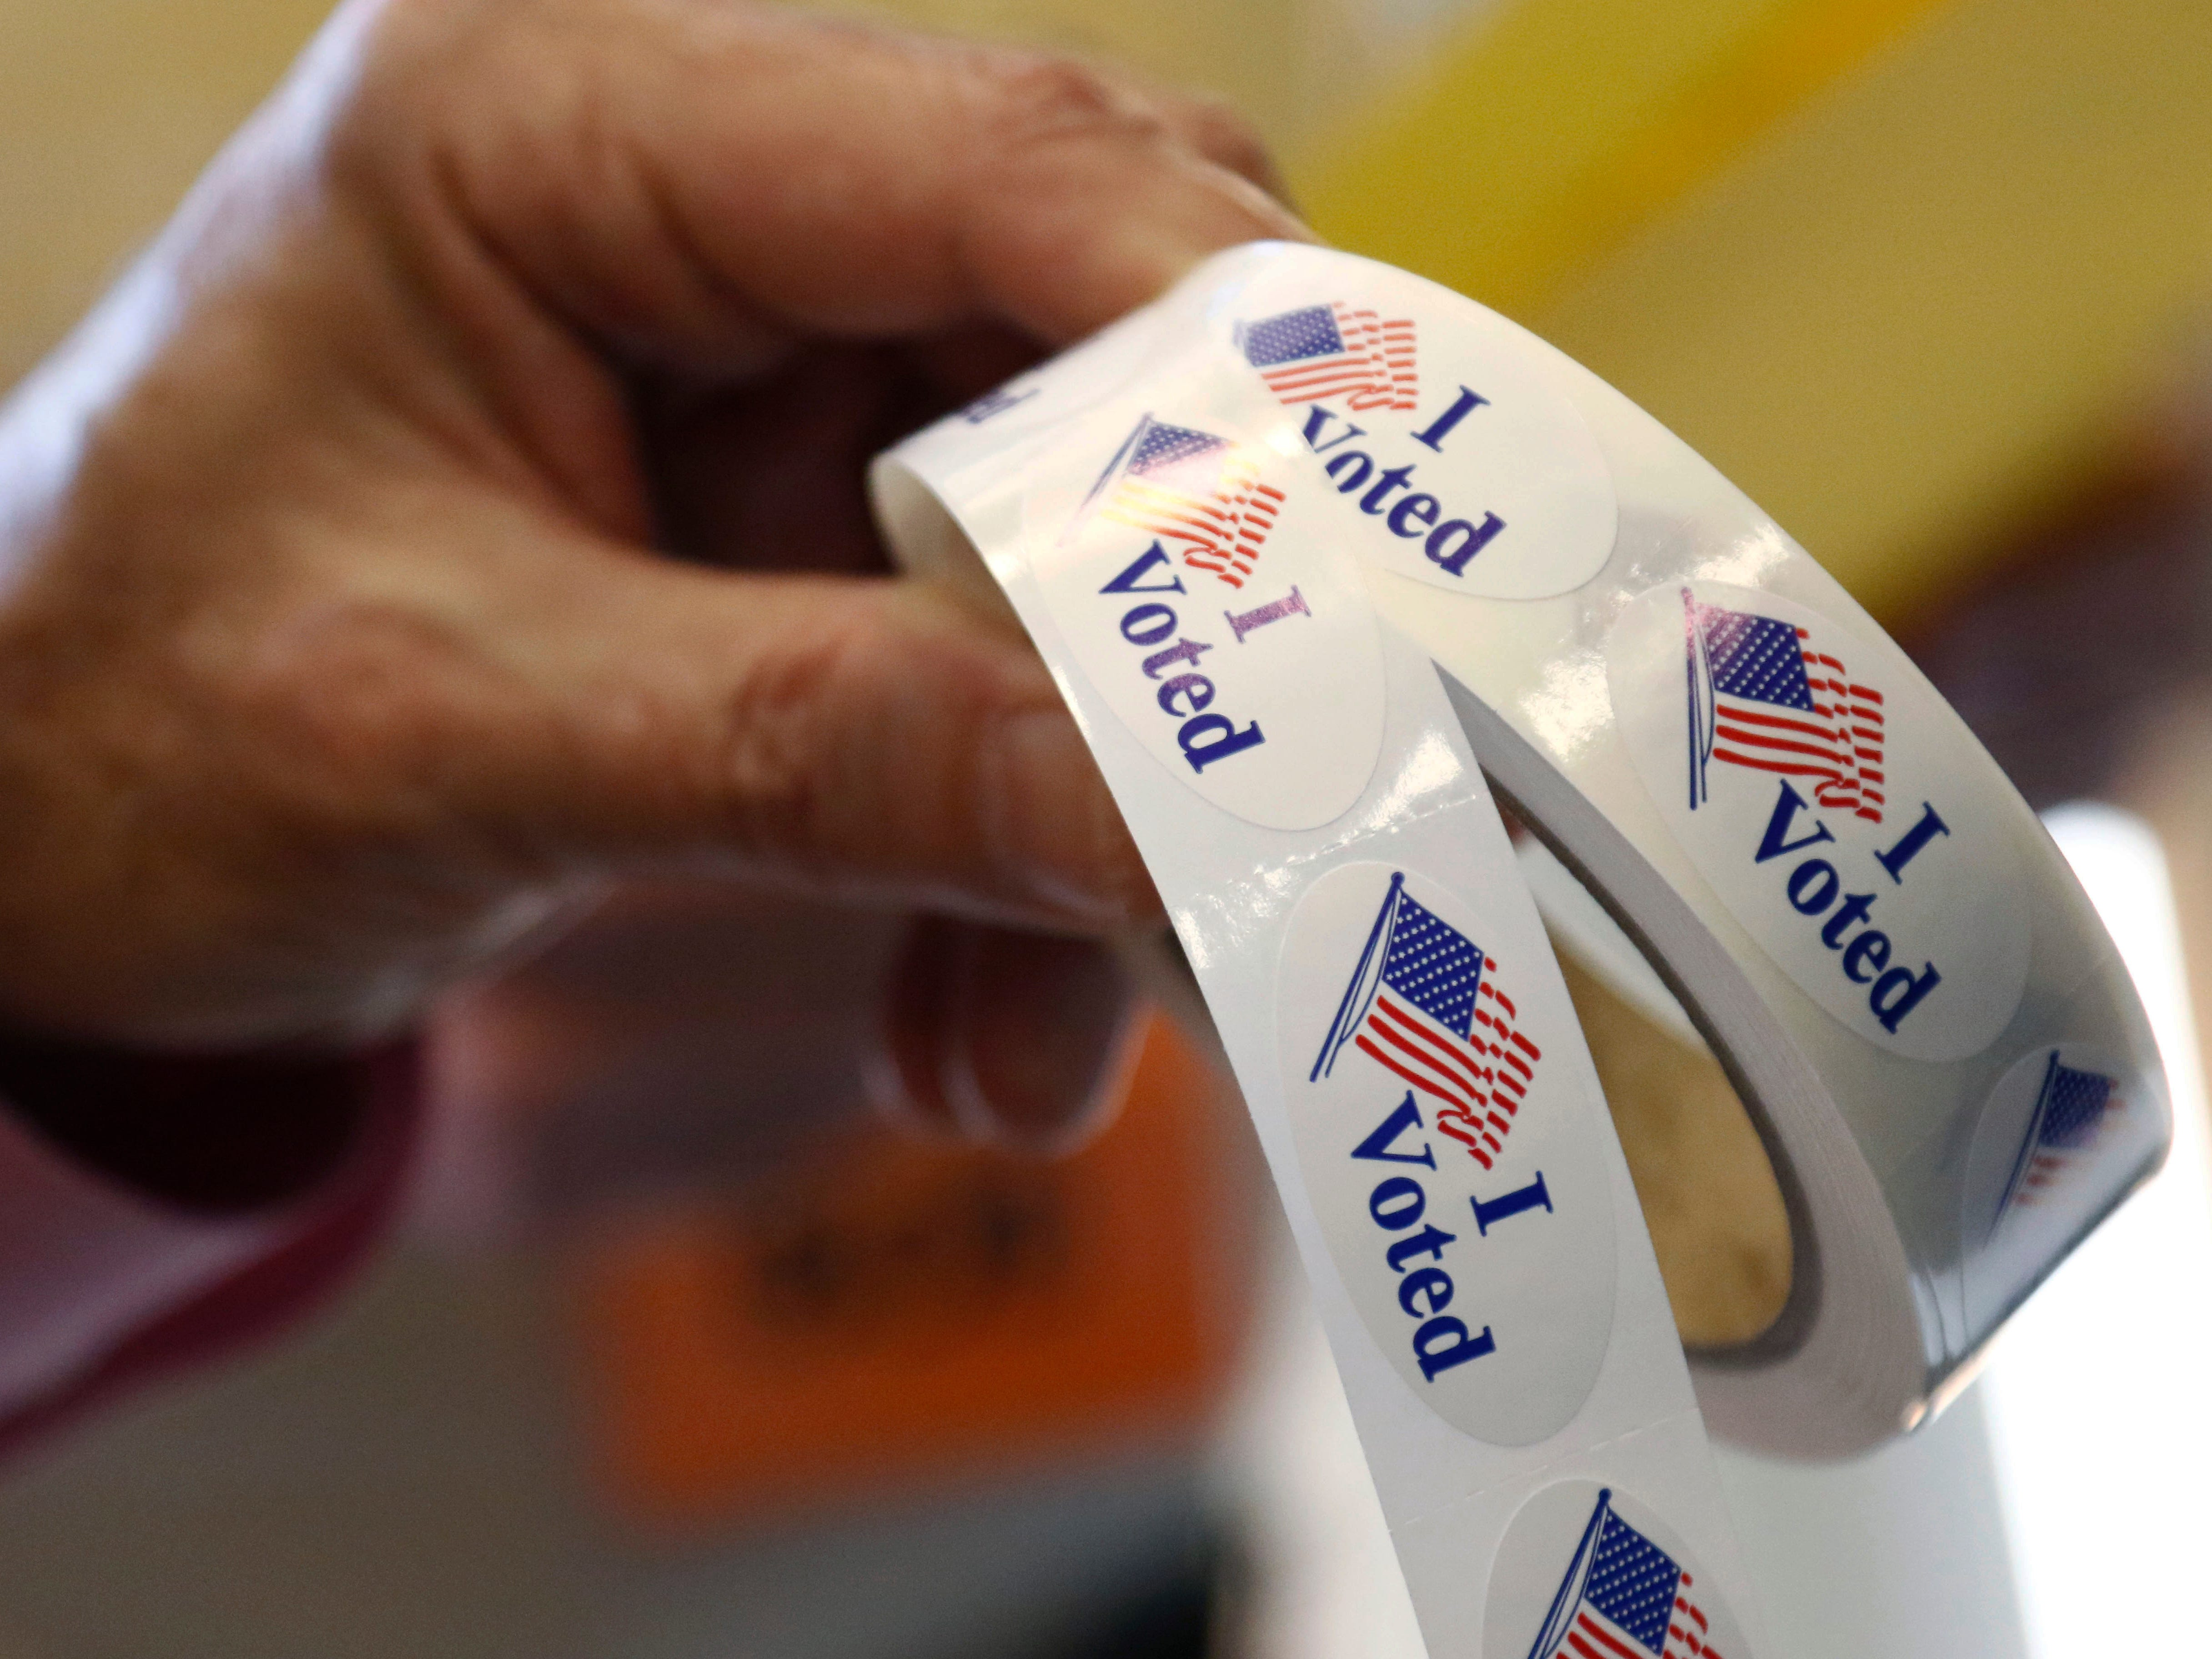 """Poll manager Larry Greer hands holds a roll of """"I Voted"""" stickers given each person after voting in a runoff election Tuesday, Nov. 27, 2018 in Ridgeland, Miss.  Mississippi voters are deciding the last U.S. Senate race of the midterms, choosing between Espy and Republican Sen. Cindy Hyde-Smith."""